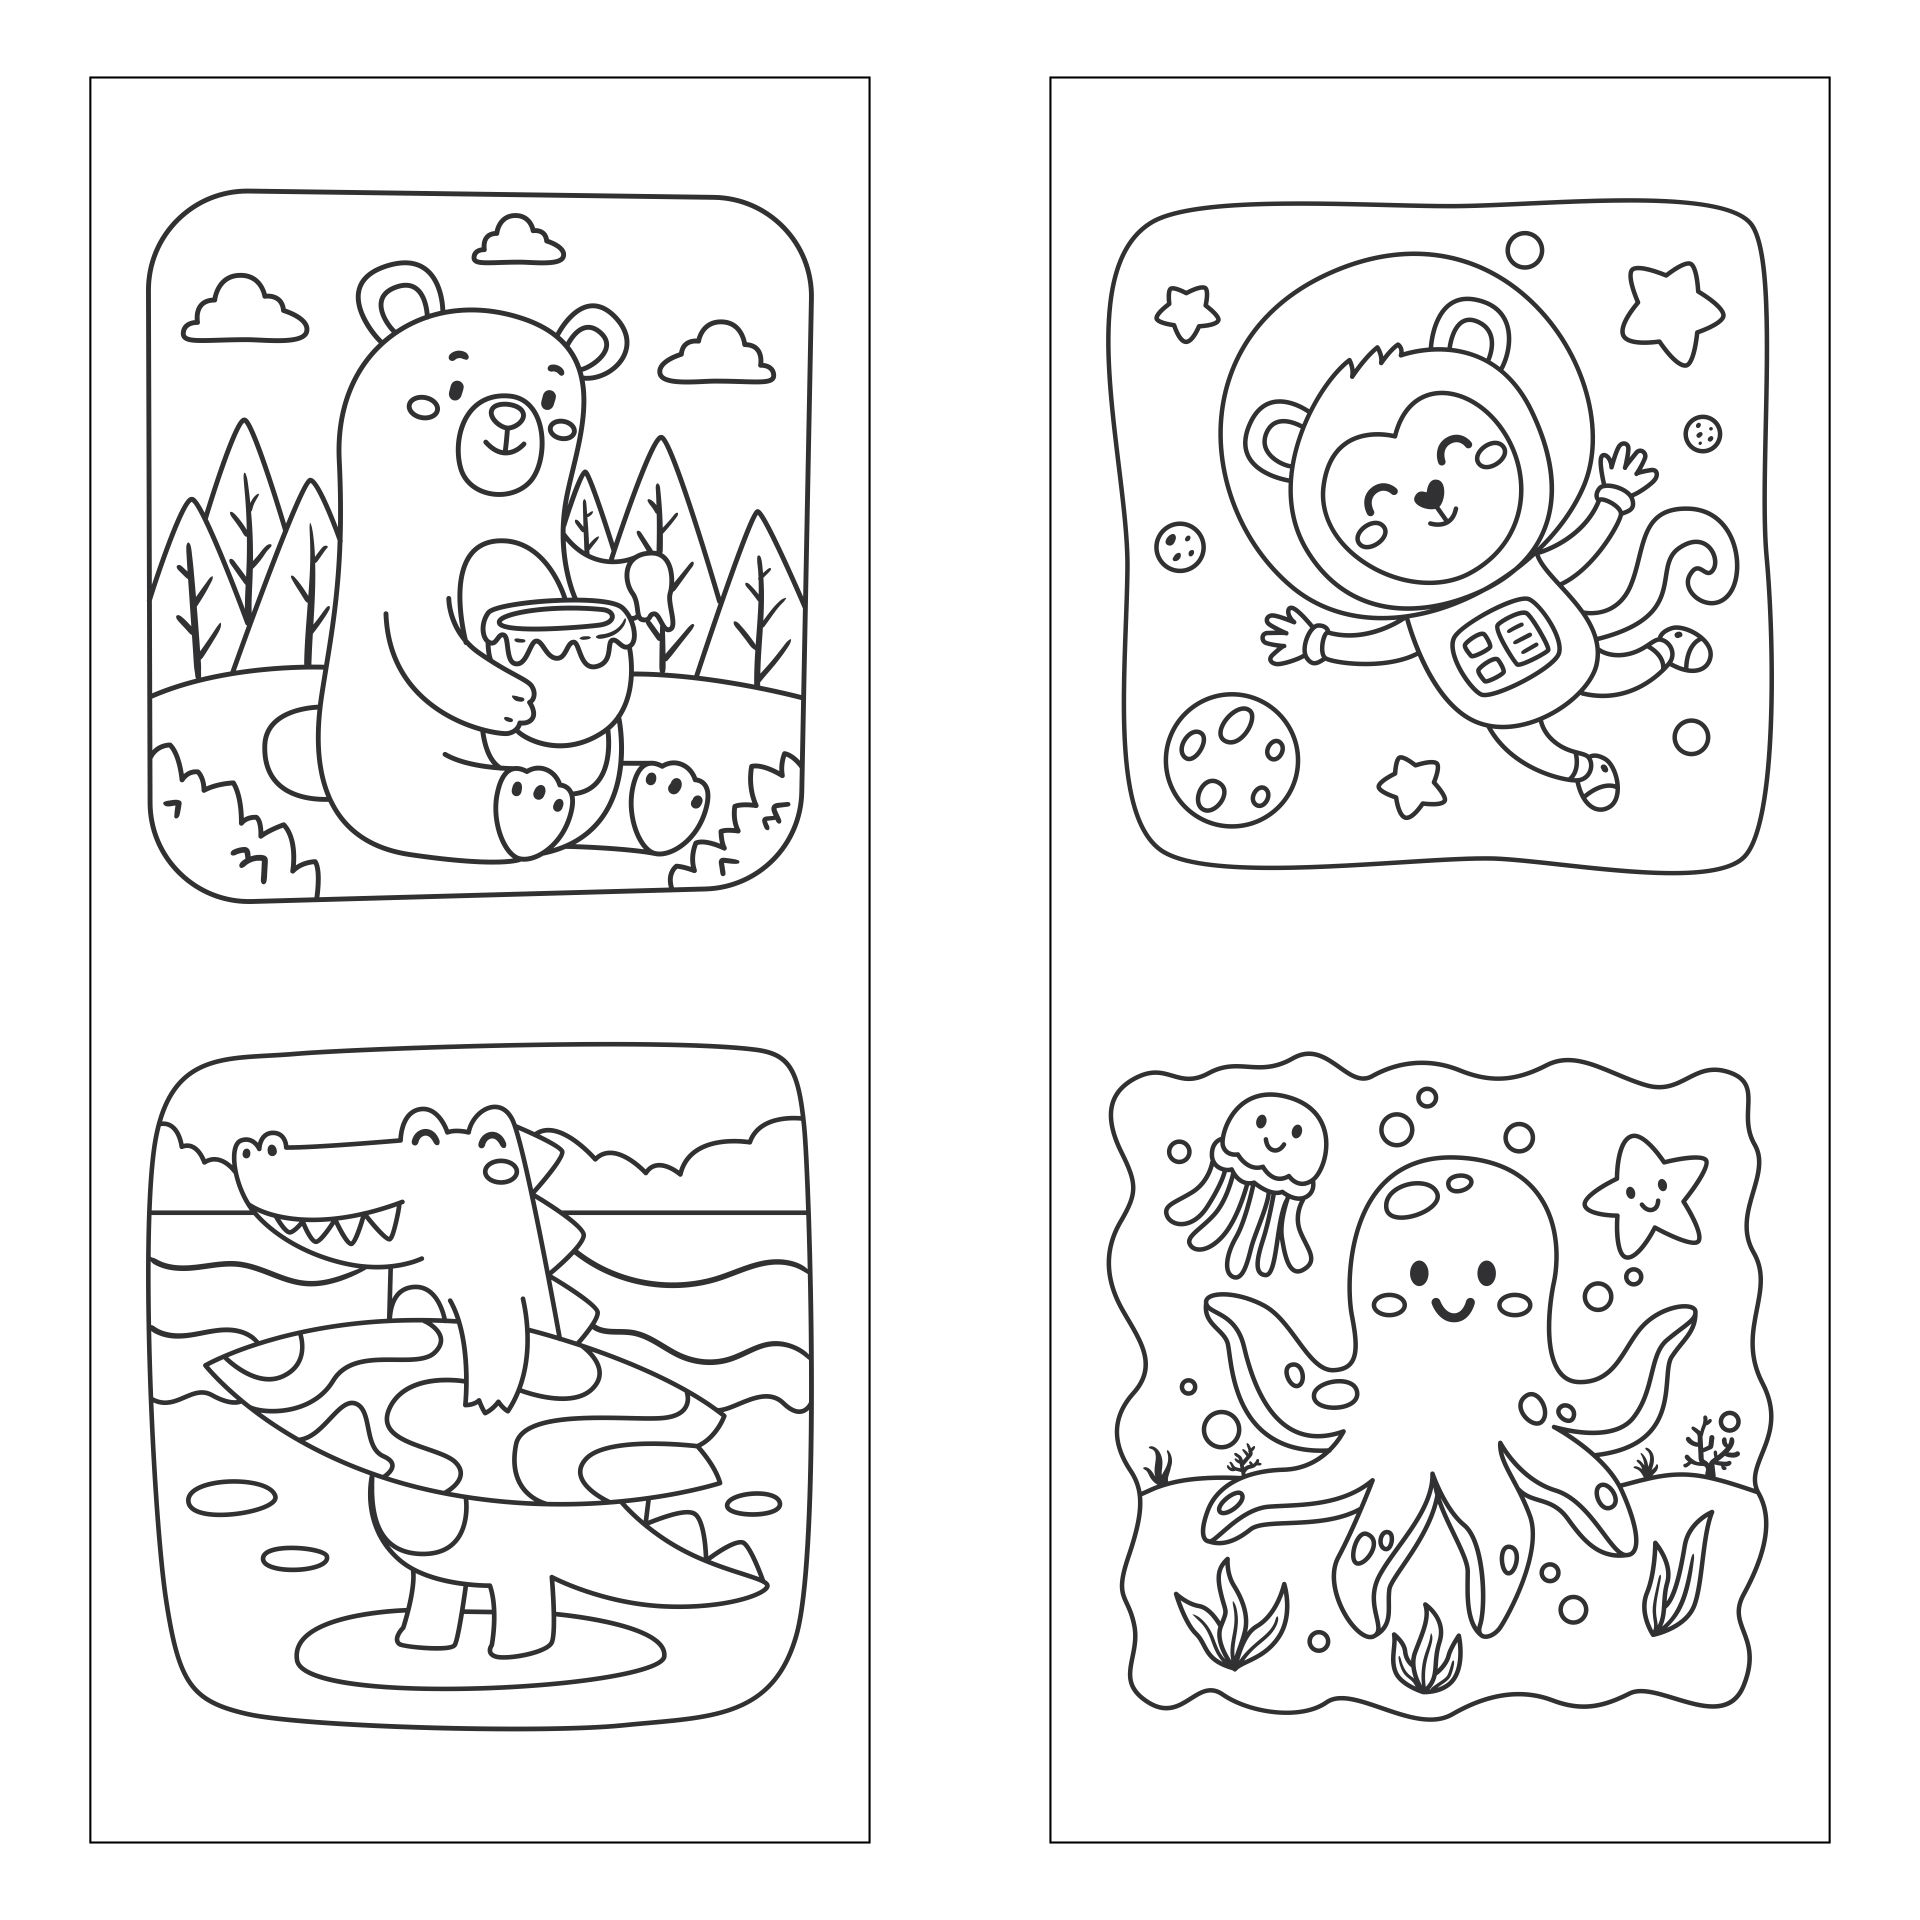 Printable Kids Bookmarks to Color